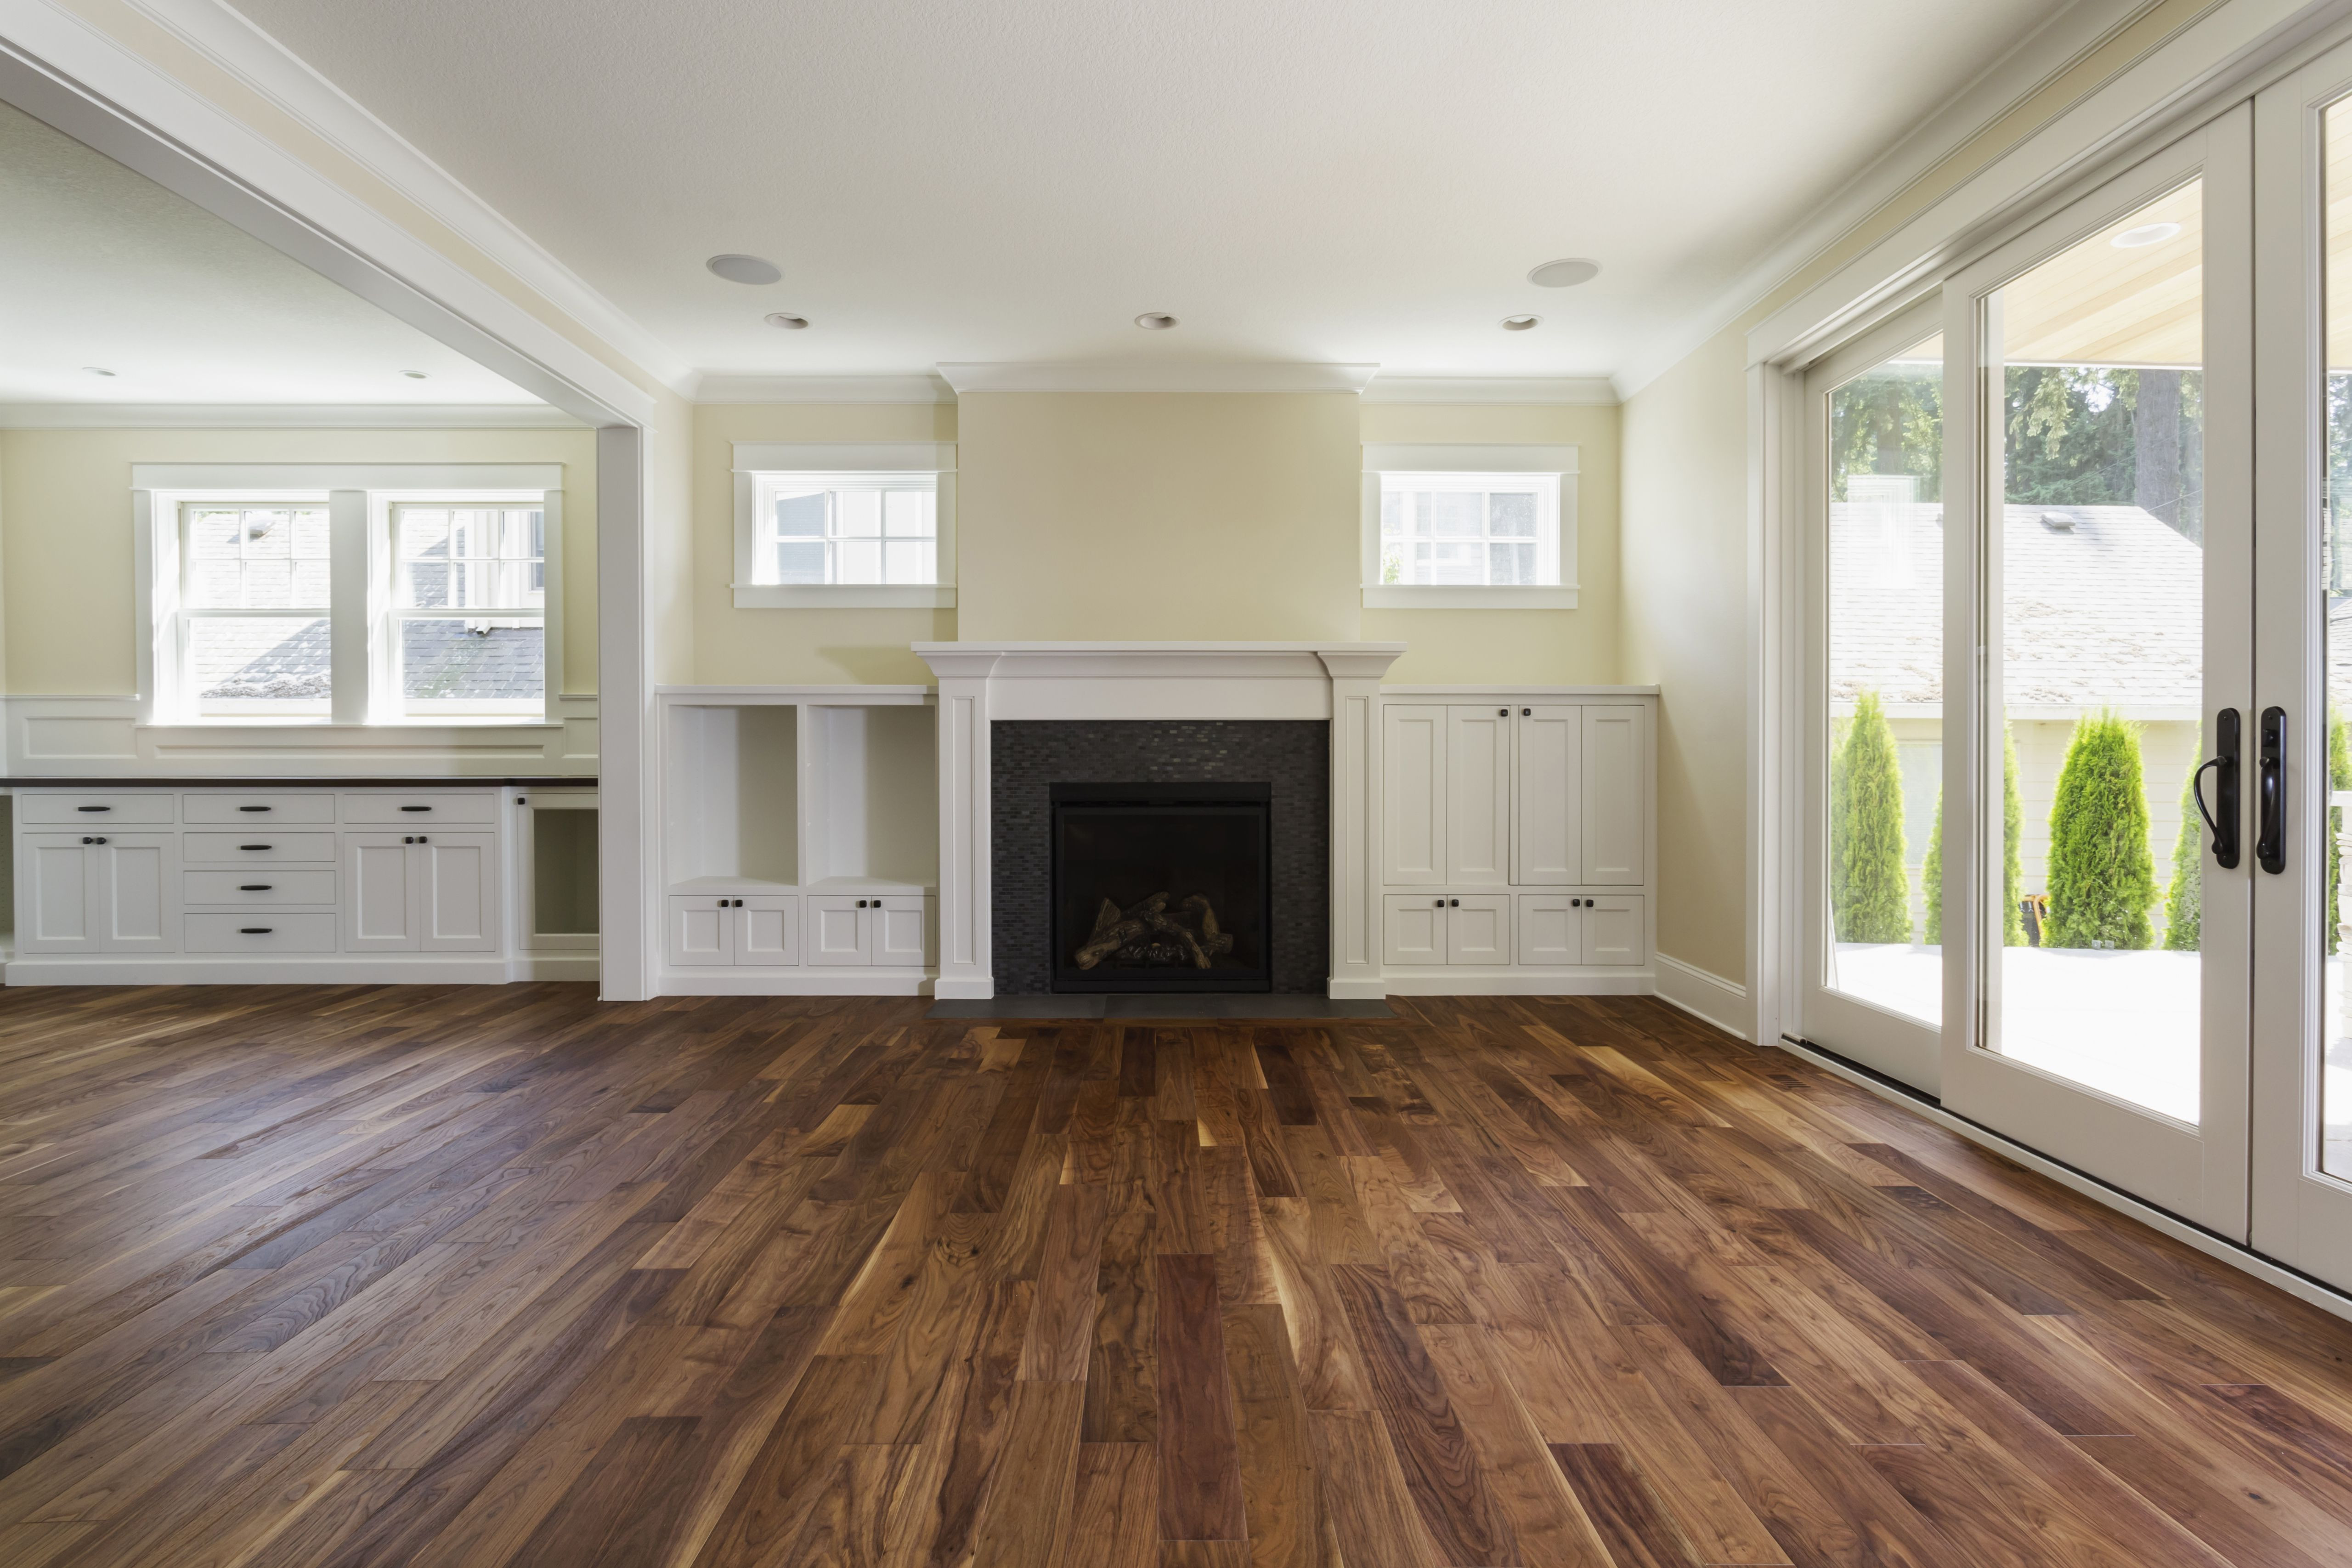 18 Fantastic How Much Does Hardwood Flooring Cost Canada 2021 free download how much does hardwood flooring cost canada of the pros and cons of prefinished hardwood flooring with regard to fireplace and built in shelves in living room 482143011 57bef8e33df78cc16e035